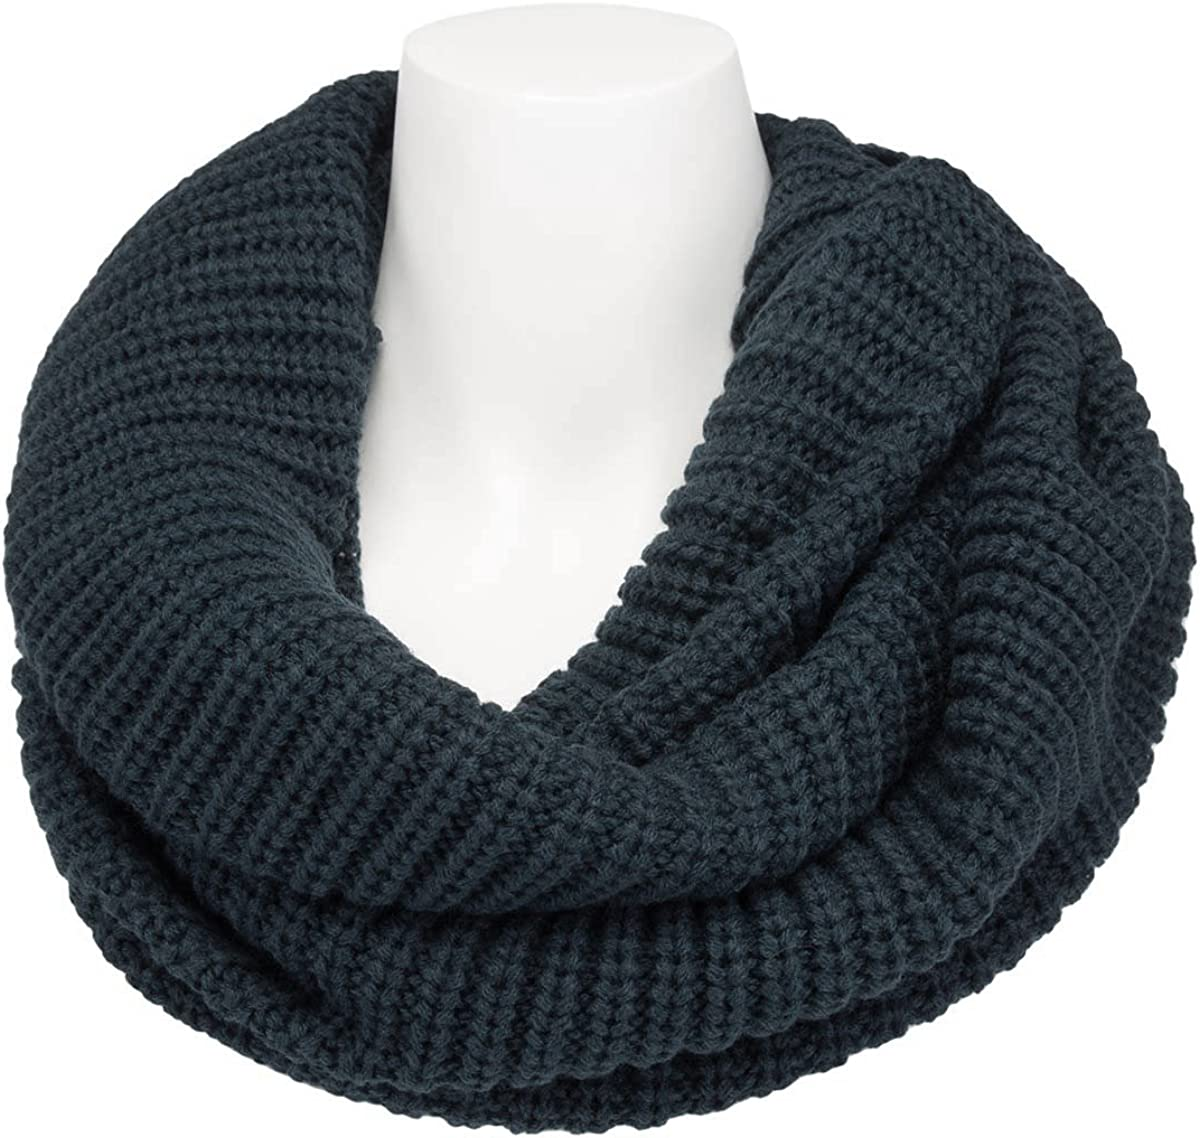 DG Hill Women's Year-end gift Infinity Free shipping anywhere in the nation Scarf Wrap Warm for Lightweight